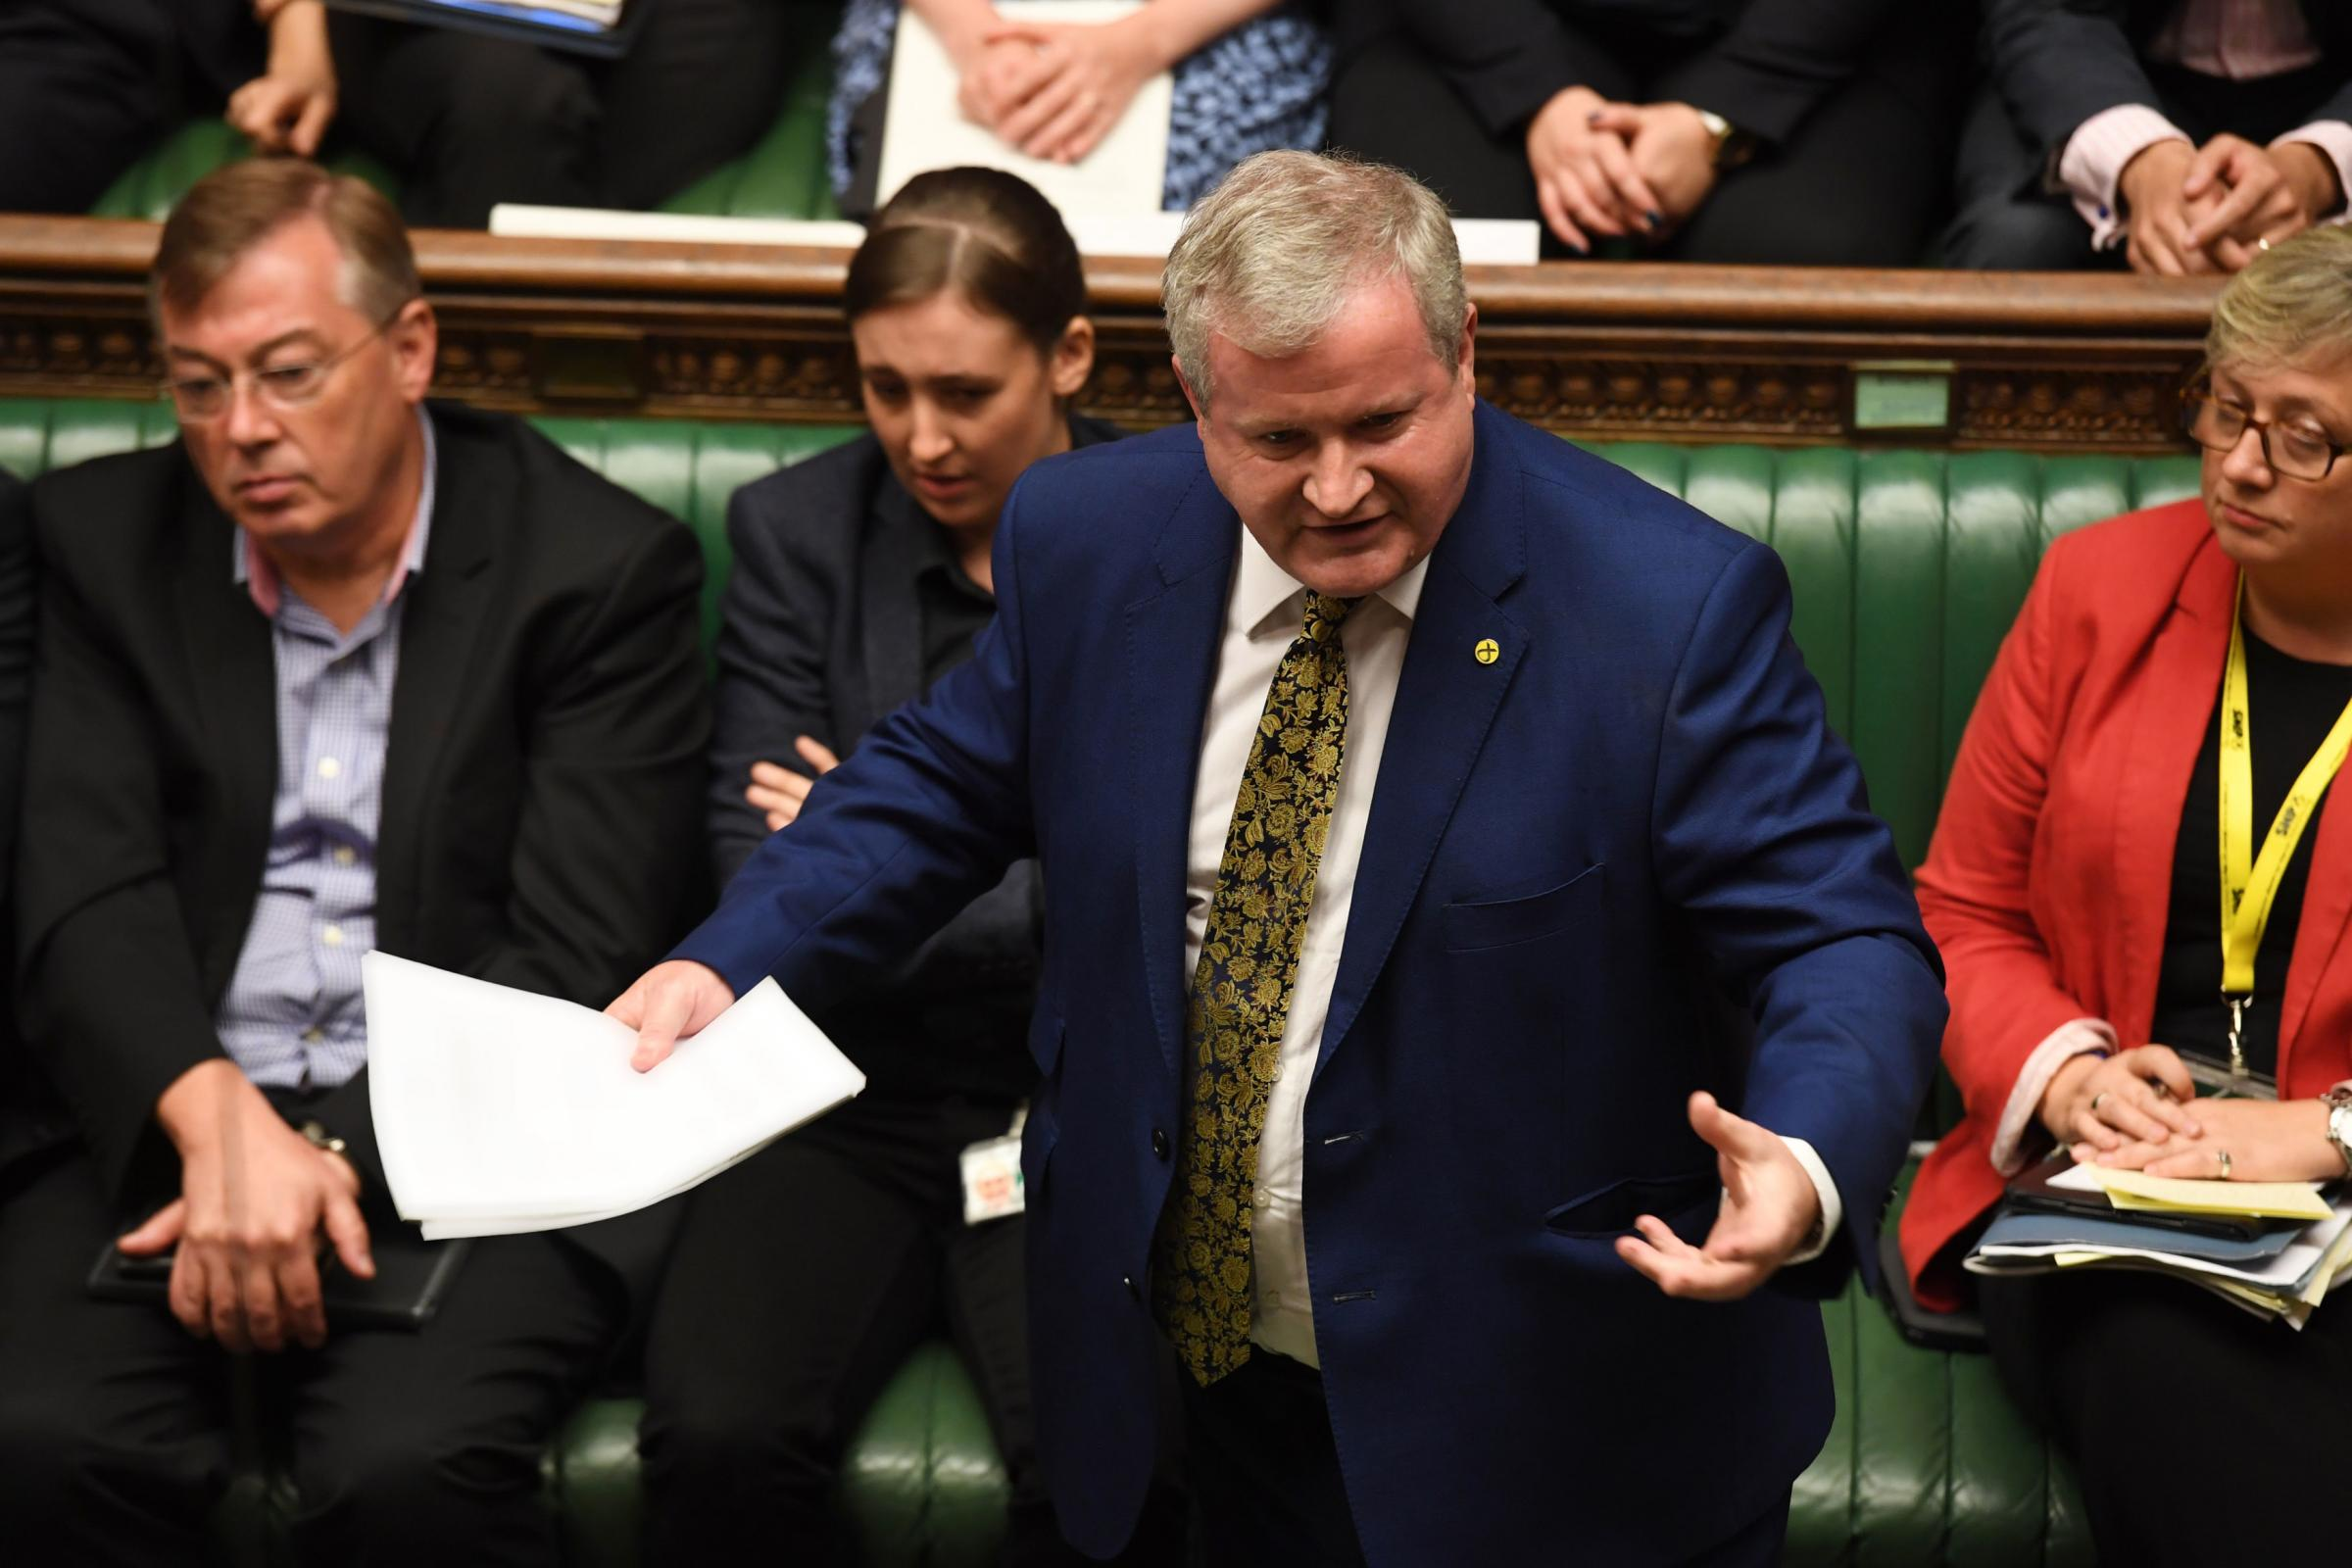 WATCH: Ian Blackford tears into Boris Johnson in ferocious speech